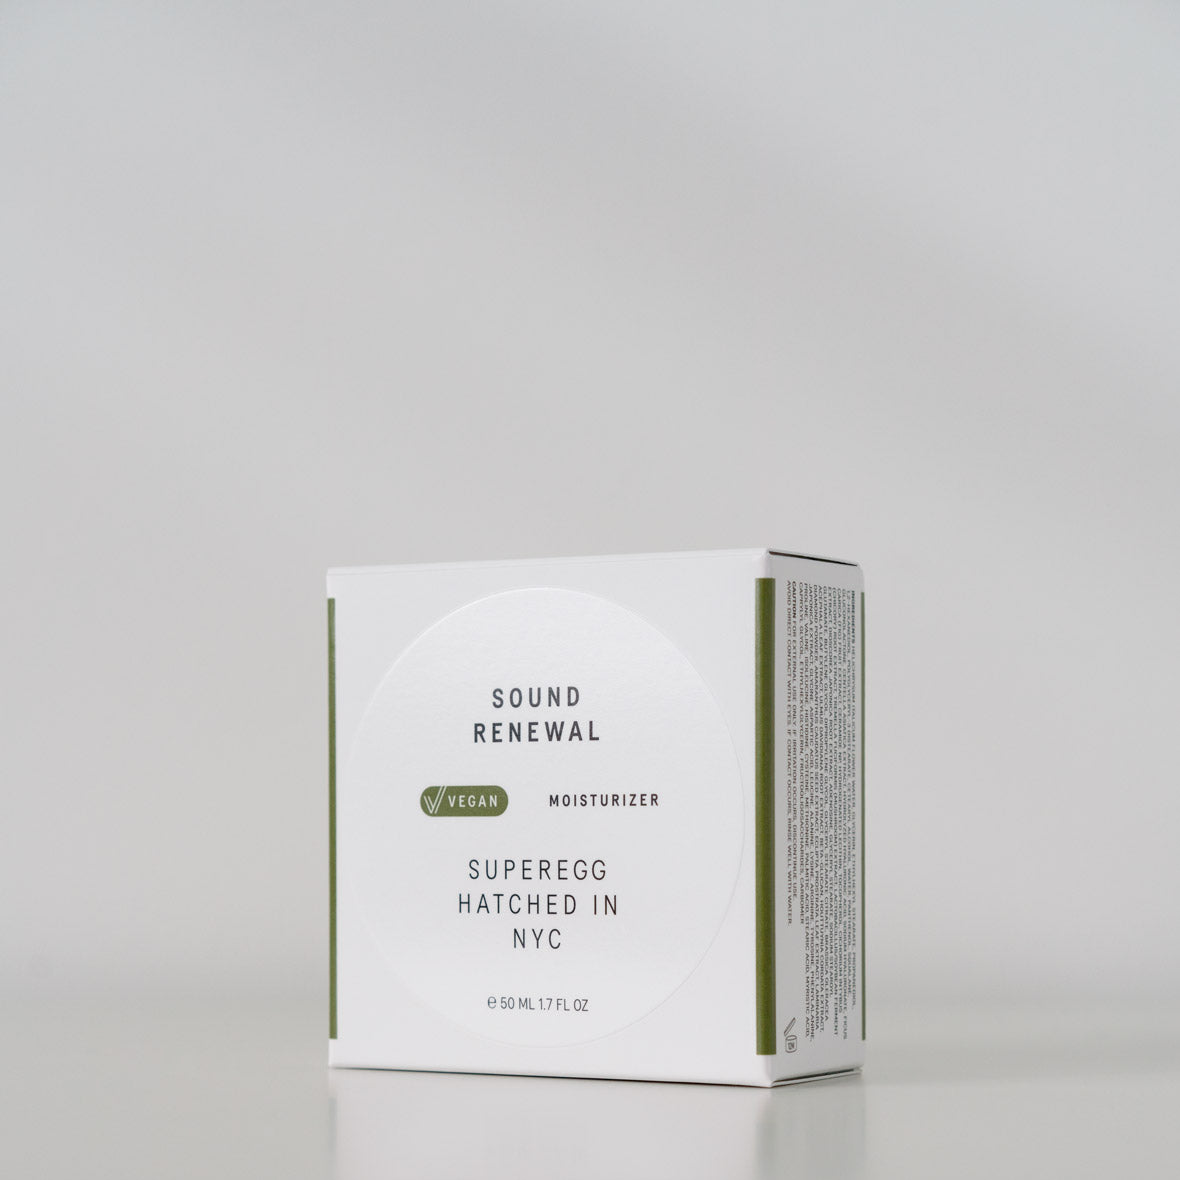 Sound Renewal Moisturizer